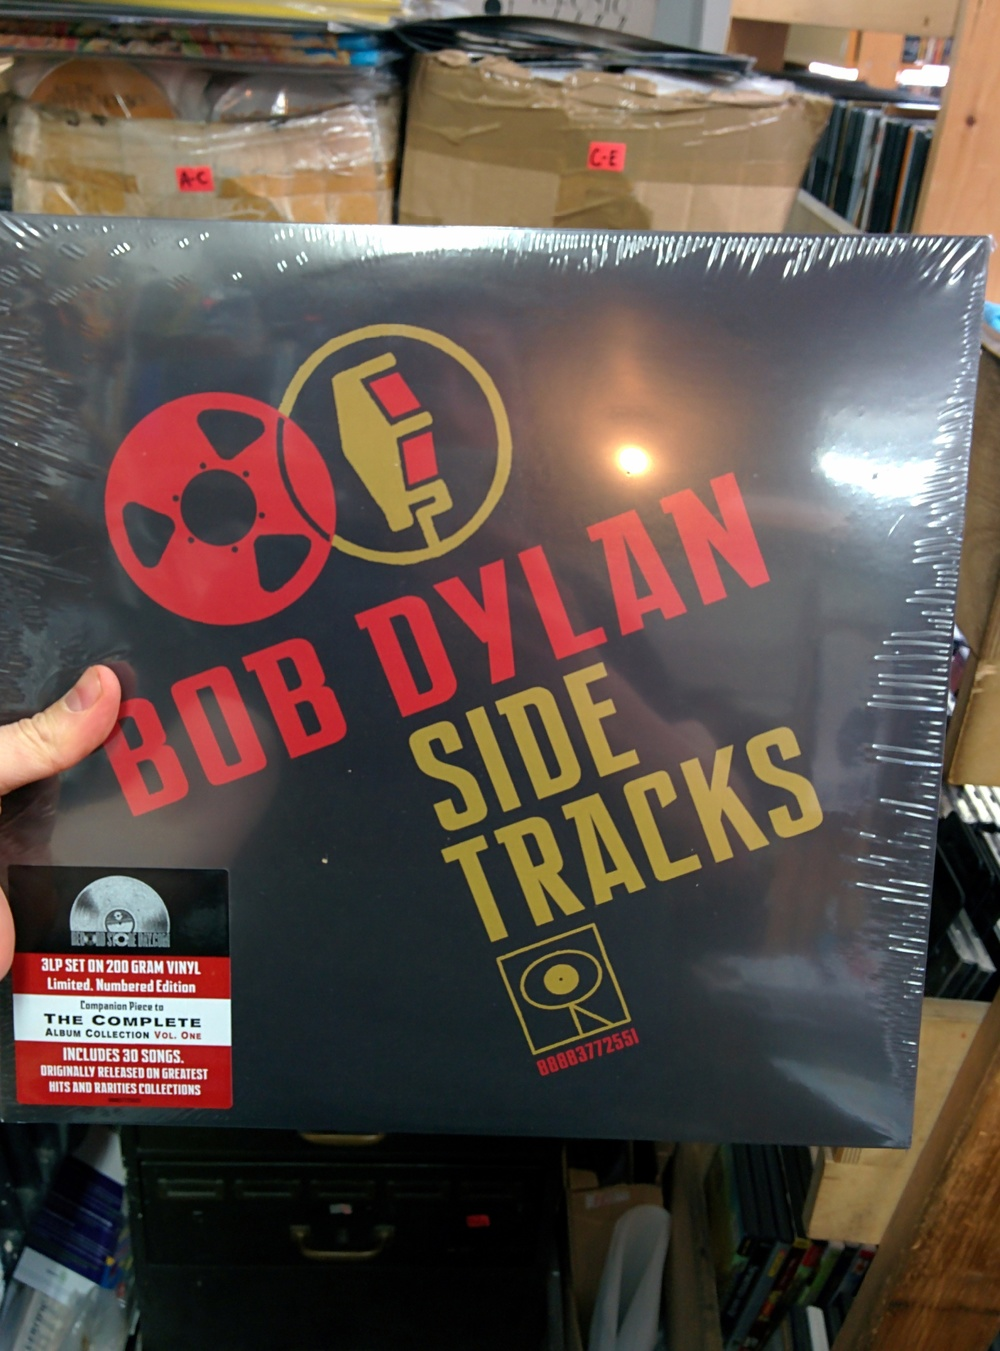 Dylan - Side Tracks - tba